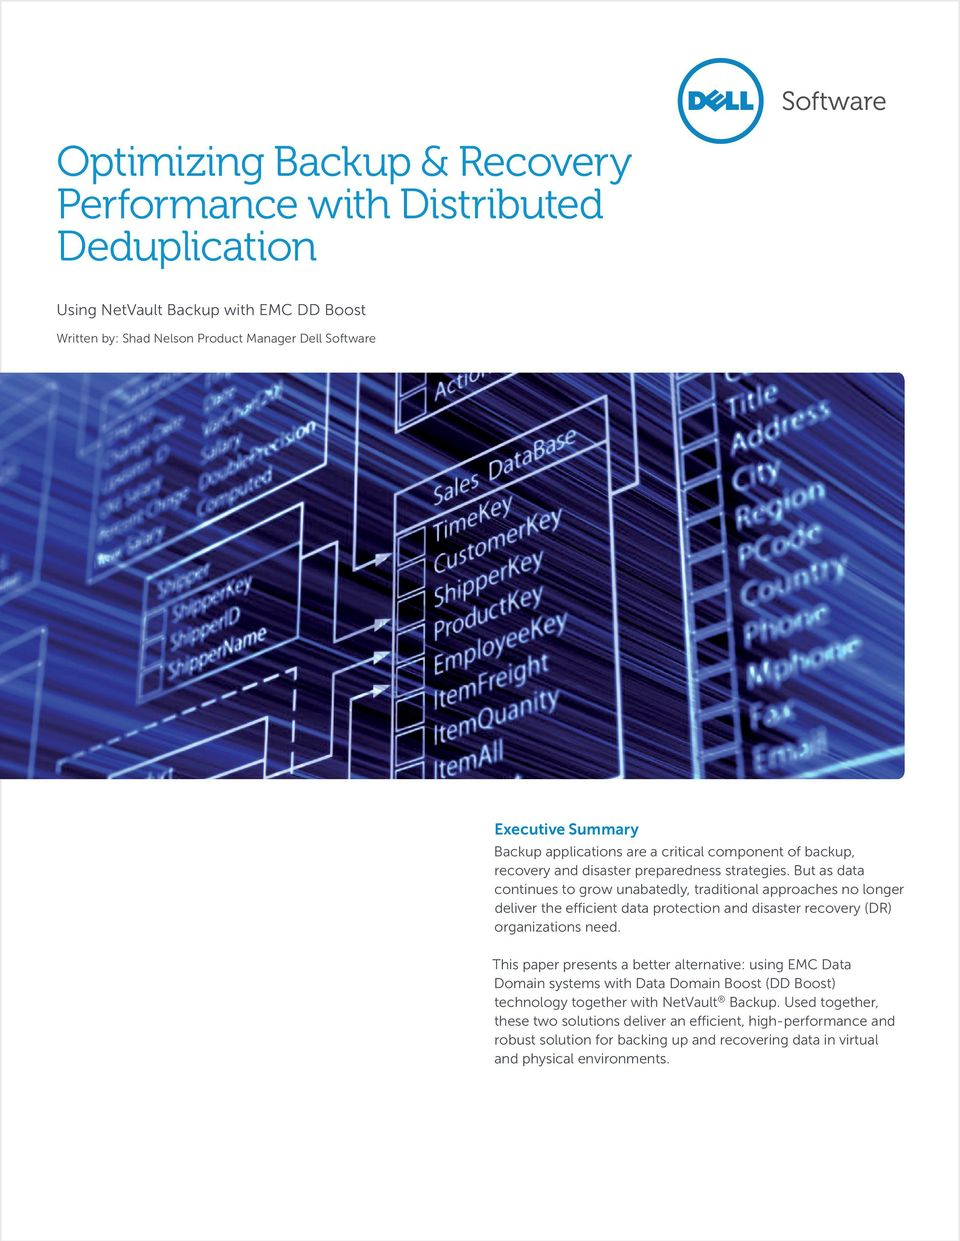 But as data continues to grow unabatedly, traditional approaches no longer deliver the efficient data protection and disaster recovery (DR) organizations need.